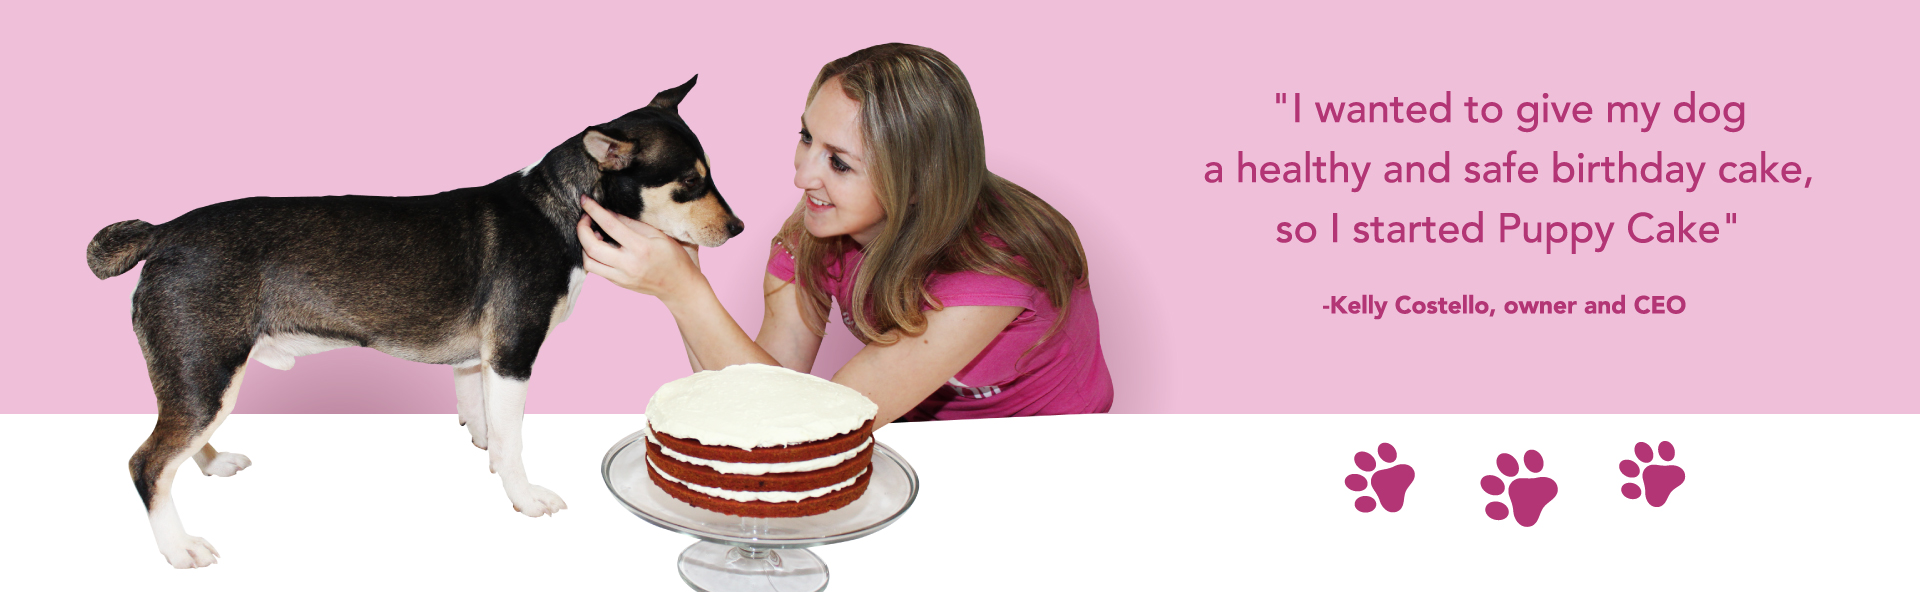 Tremendous Cake Mixes For Dogs Personalized Dog Birthday Cakes Dog Ice Funny Birthday Cards Online Fluifree Goldxyz